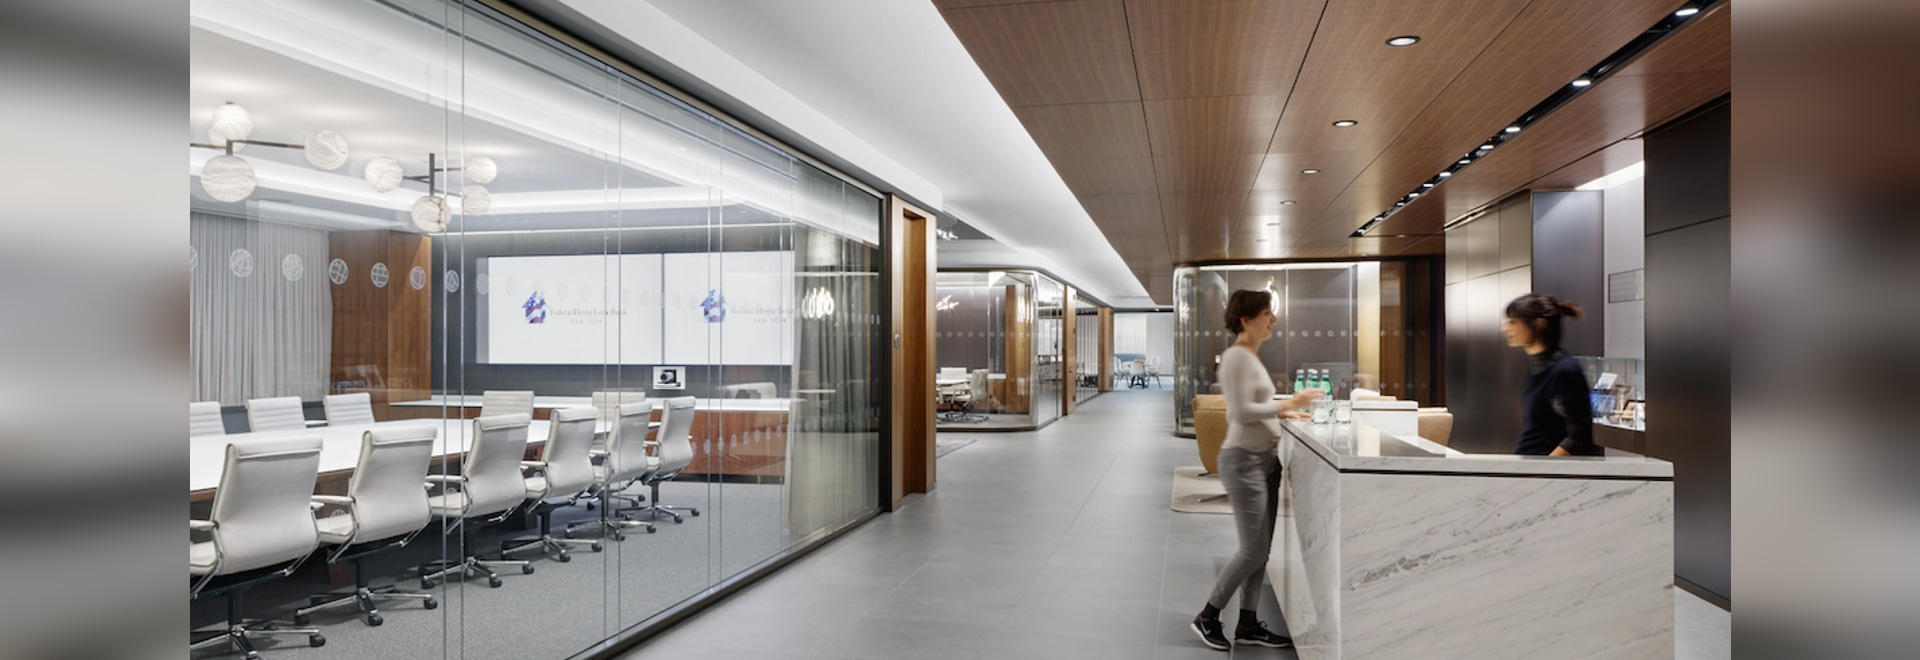 The walnut ceiling creates a warm atmosphere for visitors to the reception area. Photo: Colin Miller